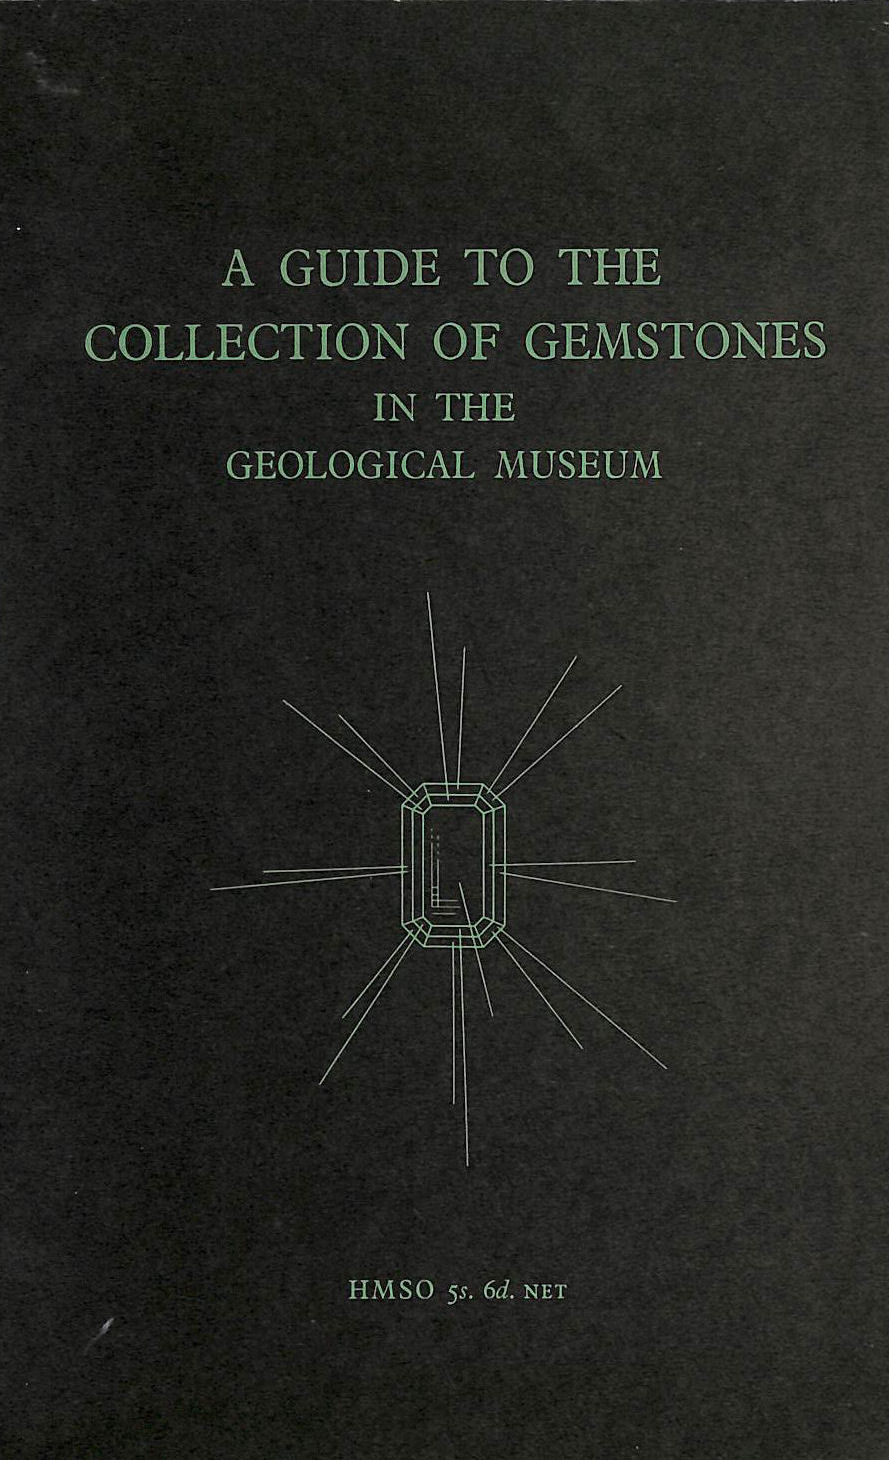 Image for A Guide to the Collection of Gemstones in the Geological Museum